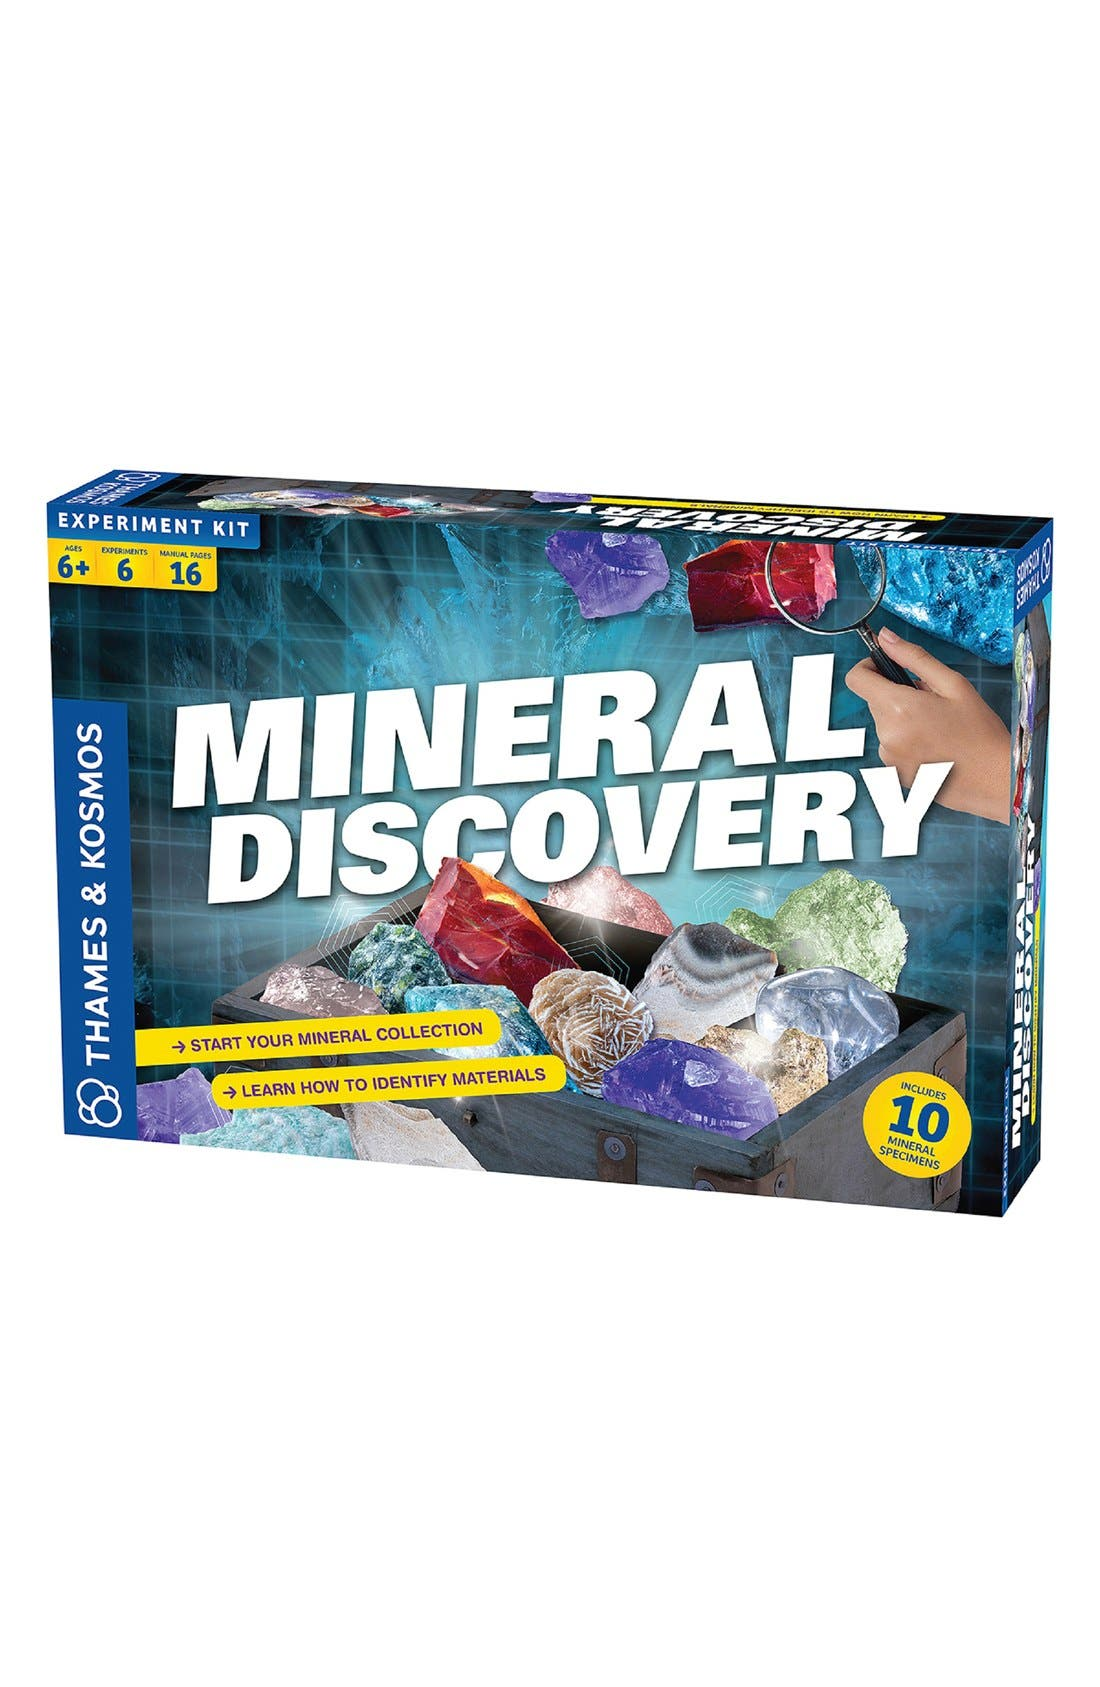 'Mineral Discovery' Experiment Kit,                             Main thumbnail 1, color,                             Blue